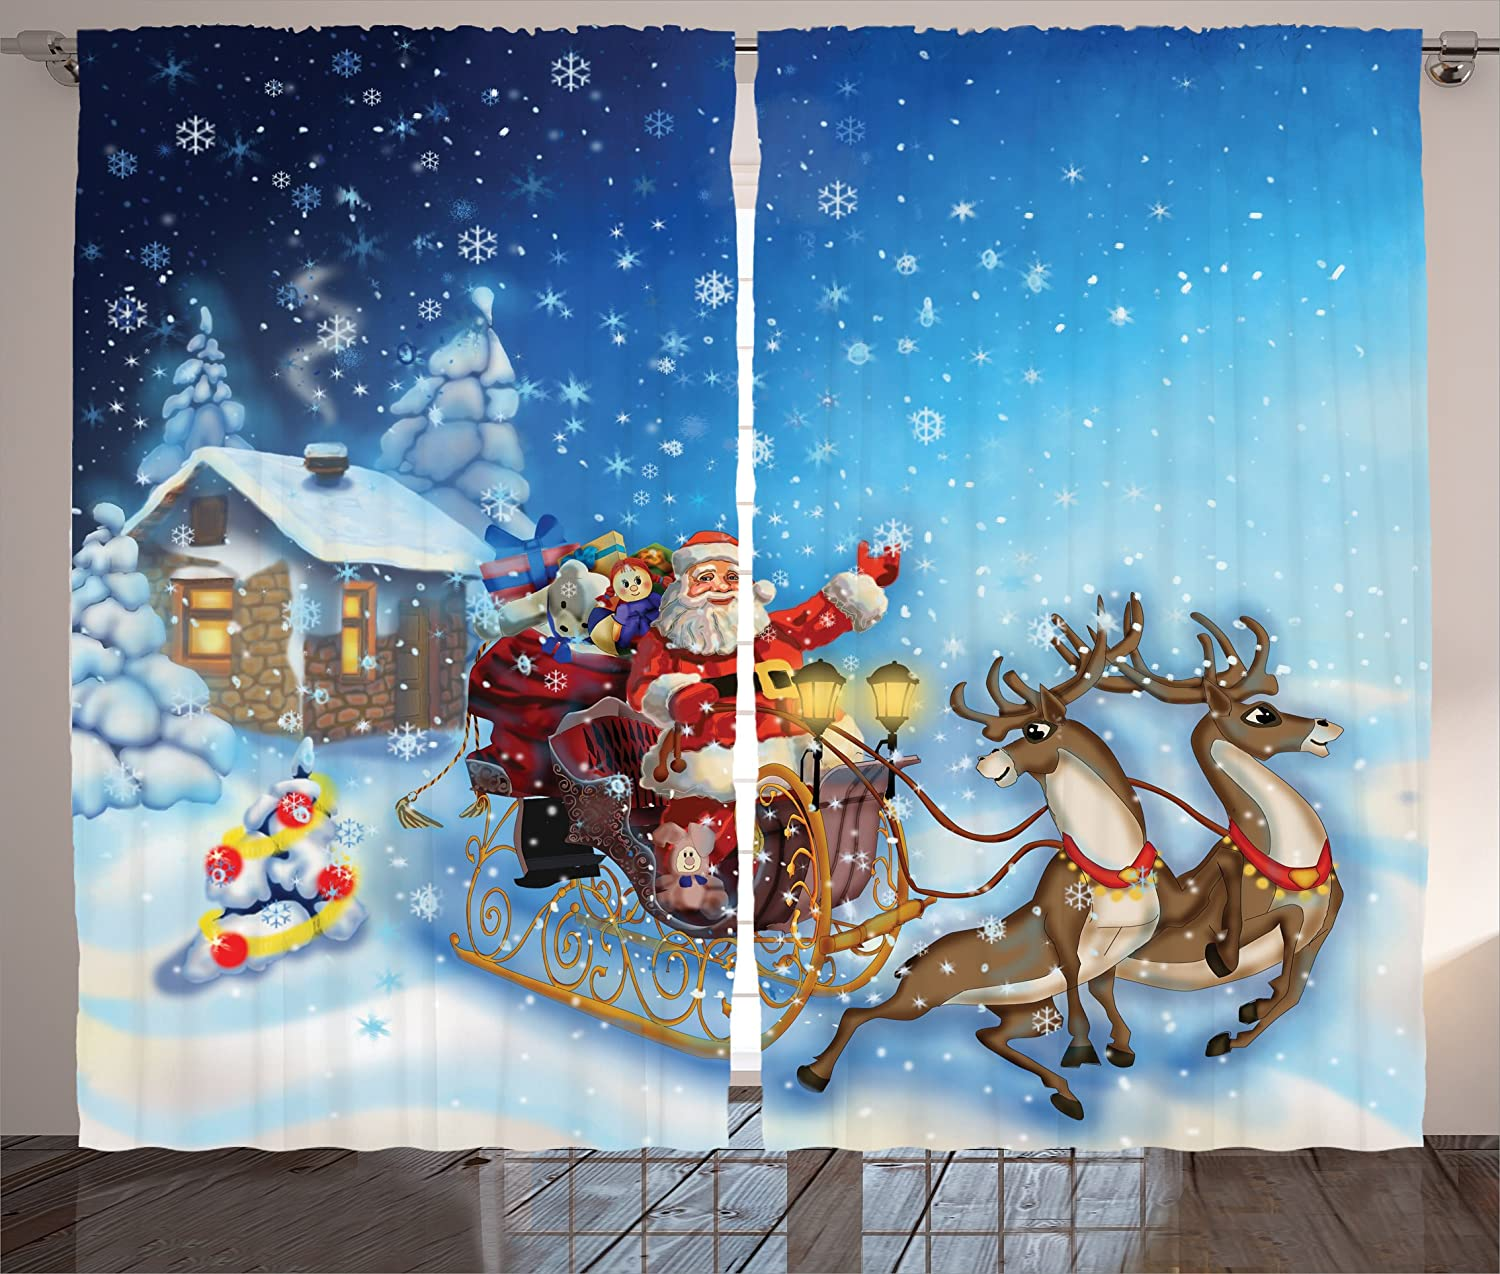 Amazon Com Ambesonne Christmas Curtains Santa In Sleigh Reindeer And Toys Snowy North Pole Tale Fantasy Image Living Room Bedroom Window Drapes 2 Panel Set 108 X 90 Navy Blue Home Kitchen